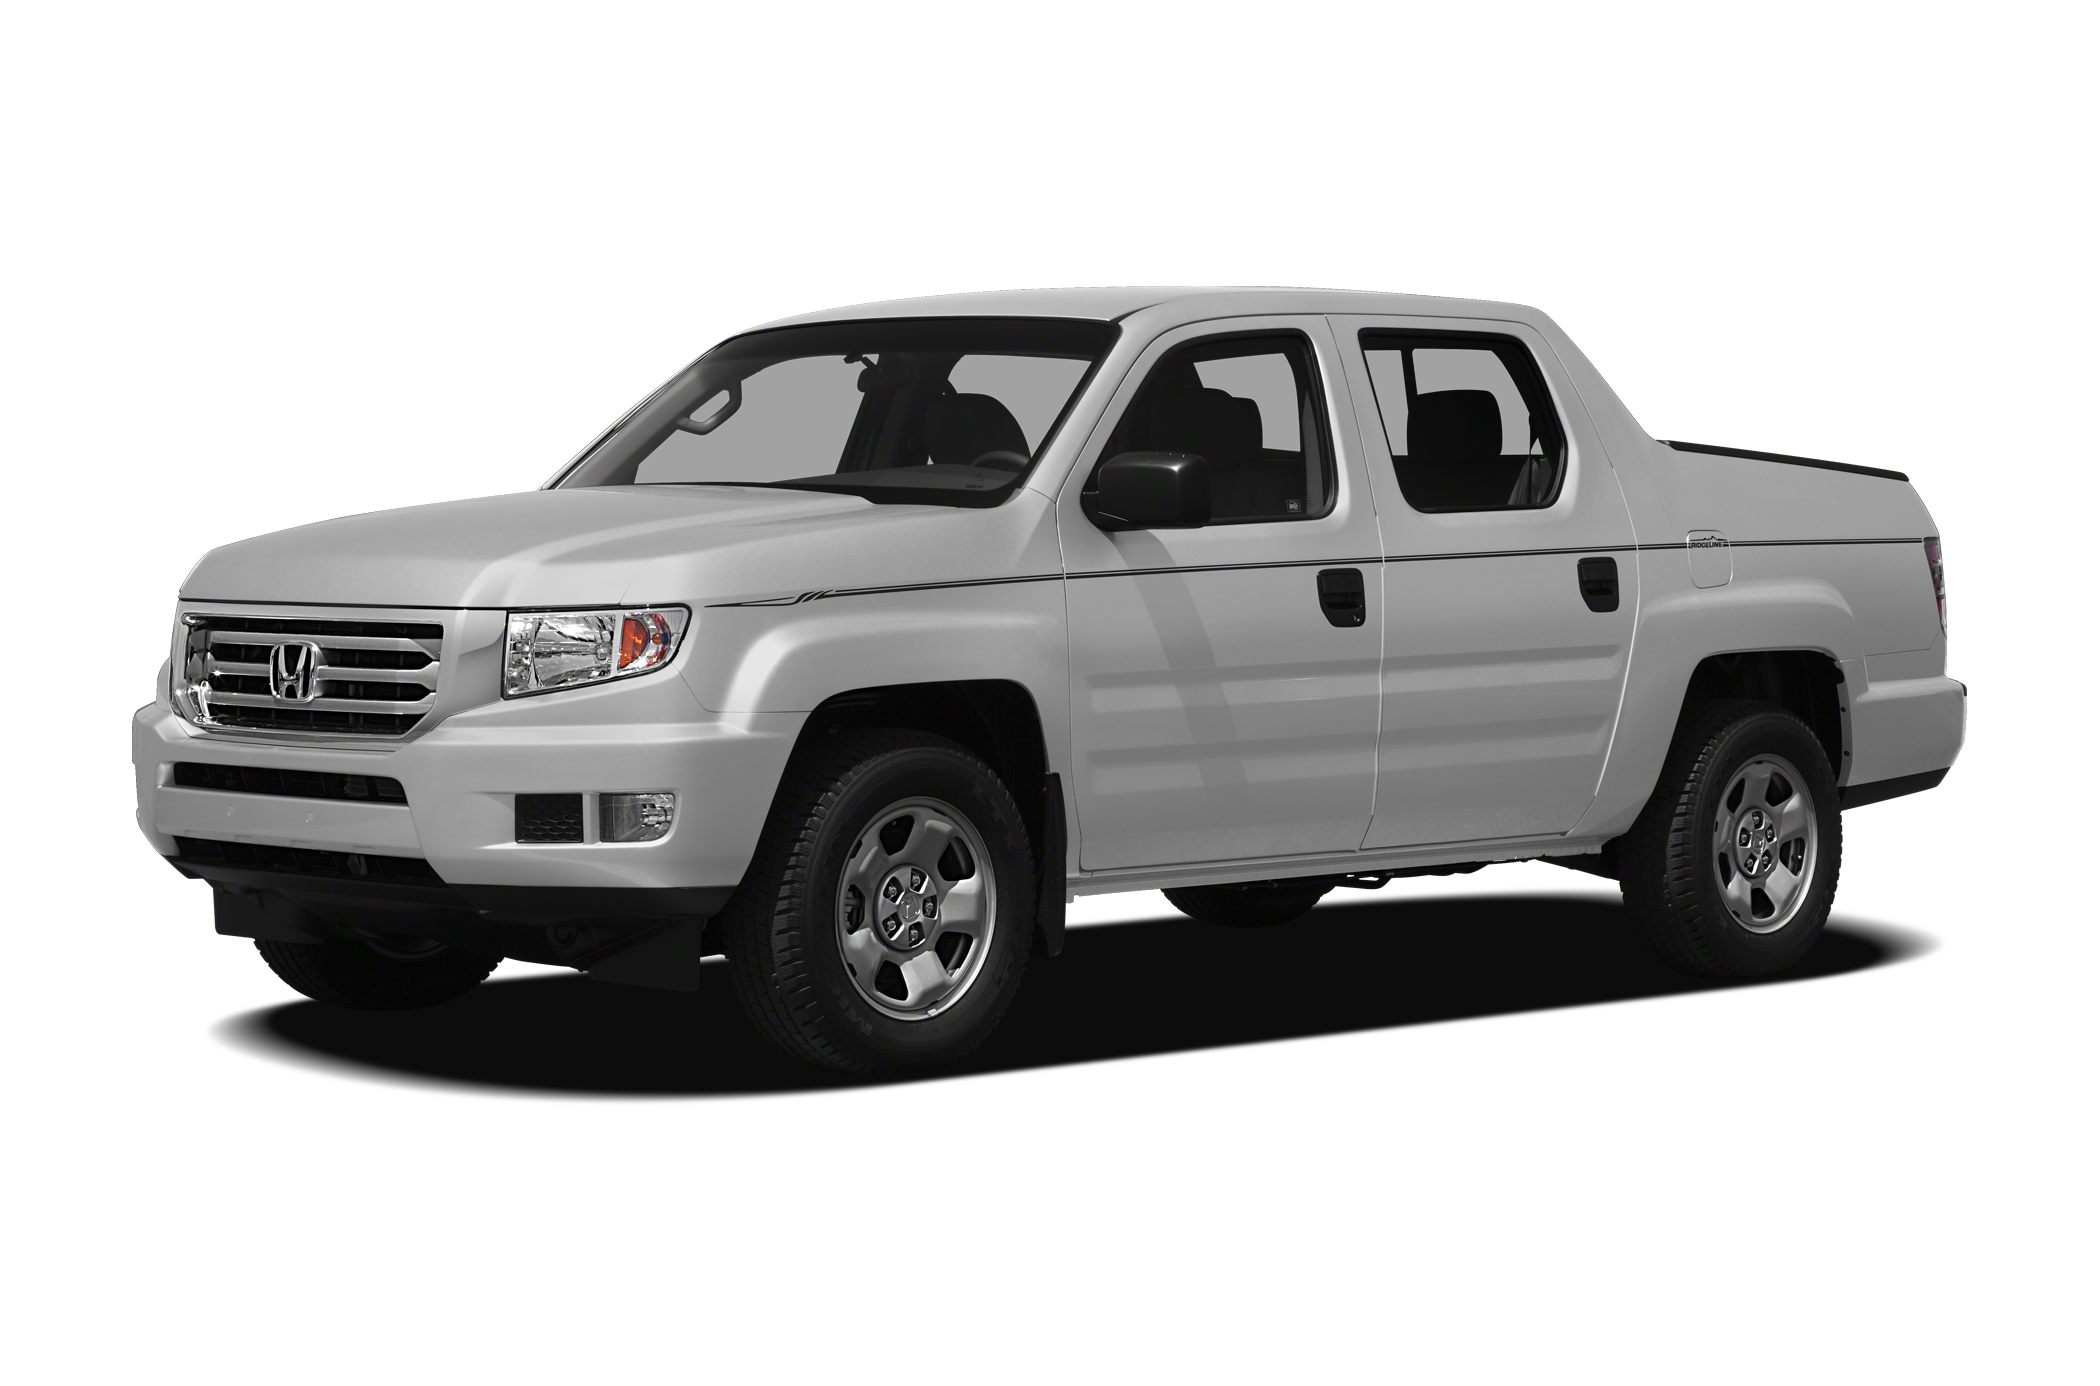 2012 Honda Ridgeline RTS You NEED to see this truck Real Winner Your quest for a gently used tru